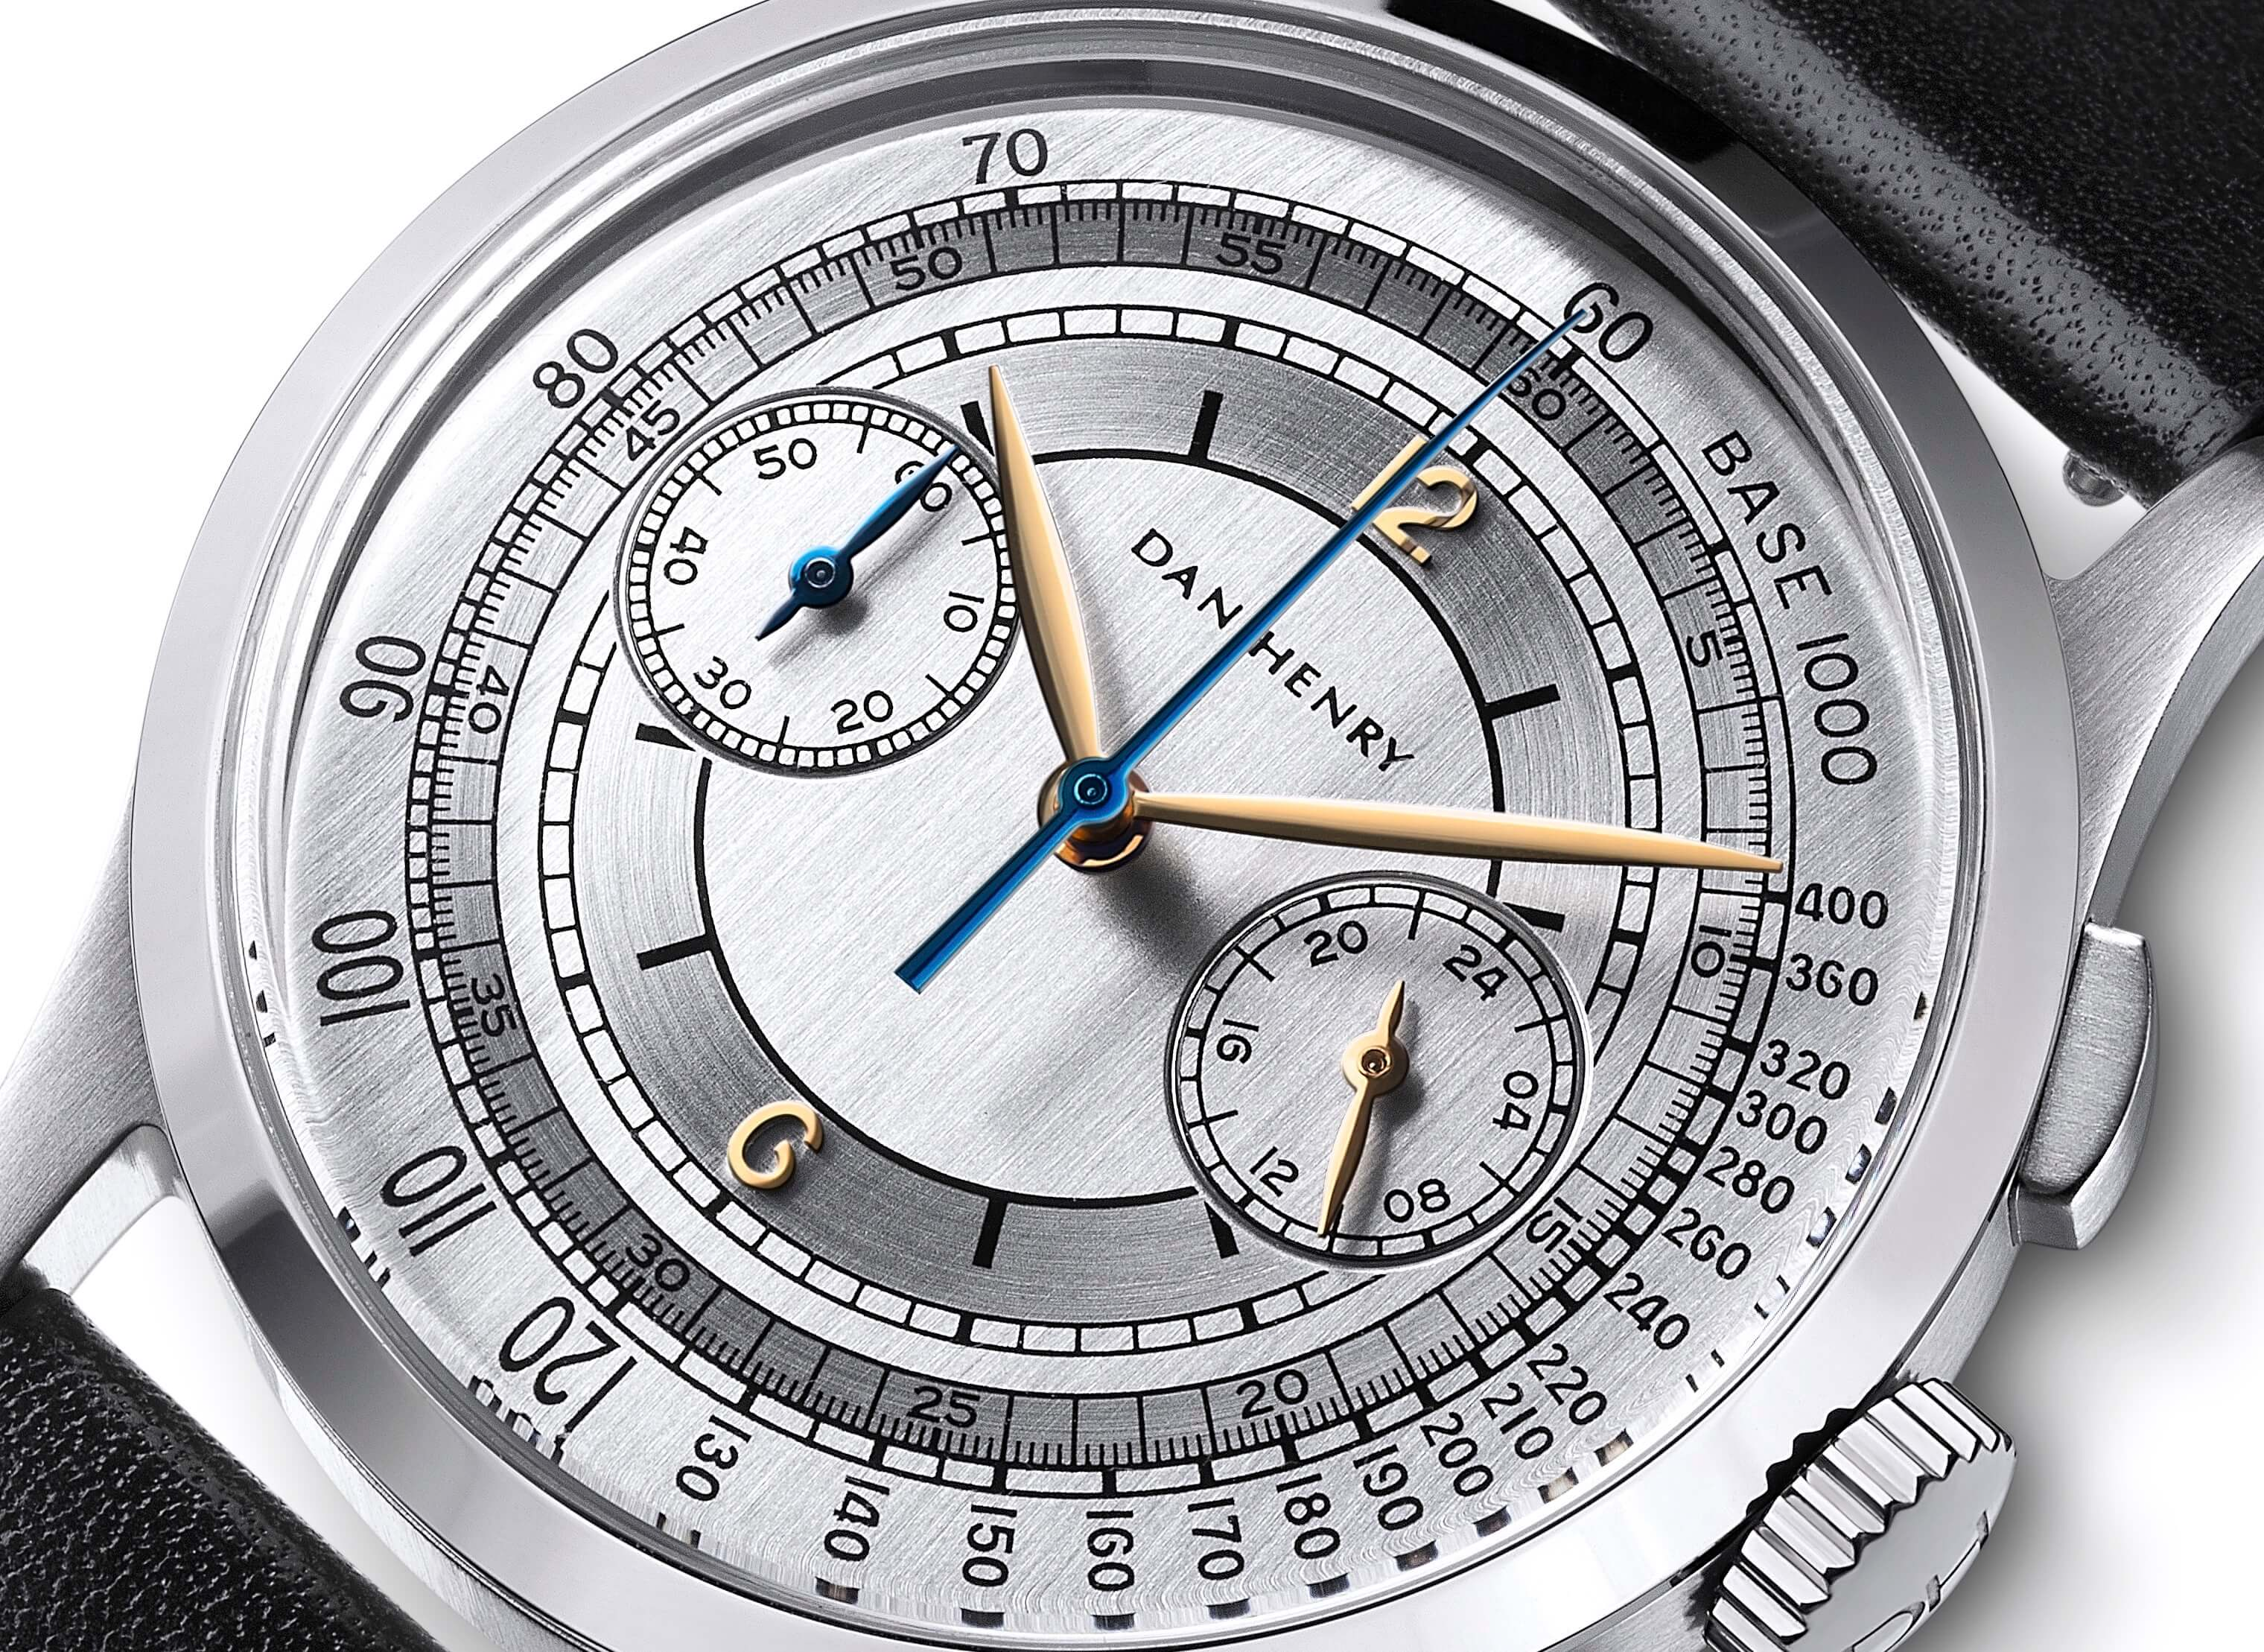 <h3>Dial</h3><p>Silver sector dial with Tachymeter, gold applied numbers, and Leaf-shaped hands </p>